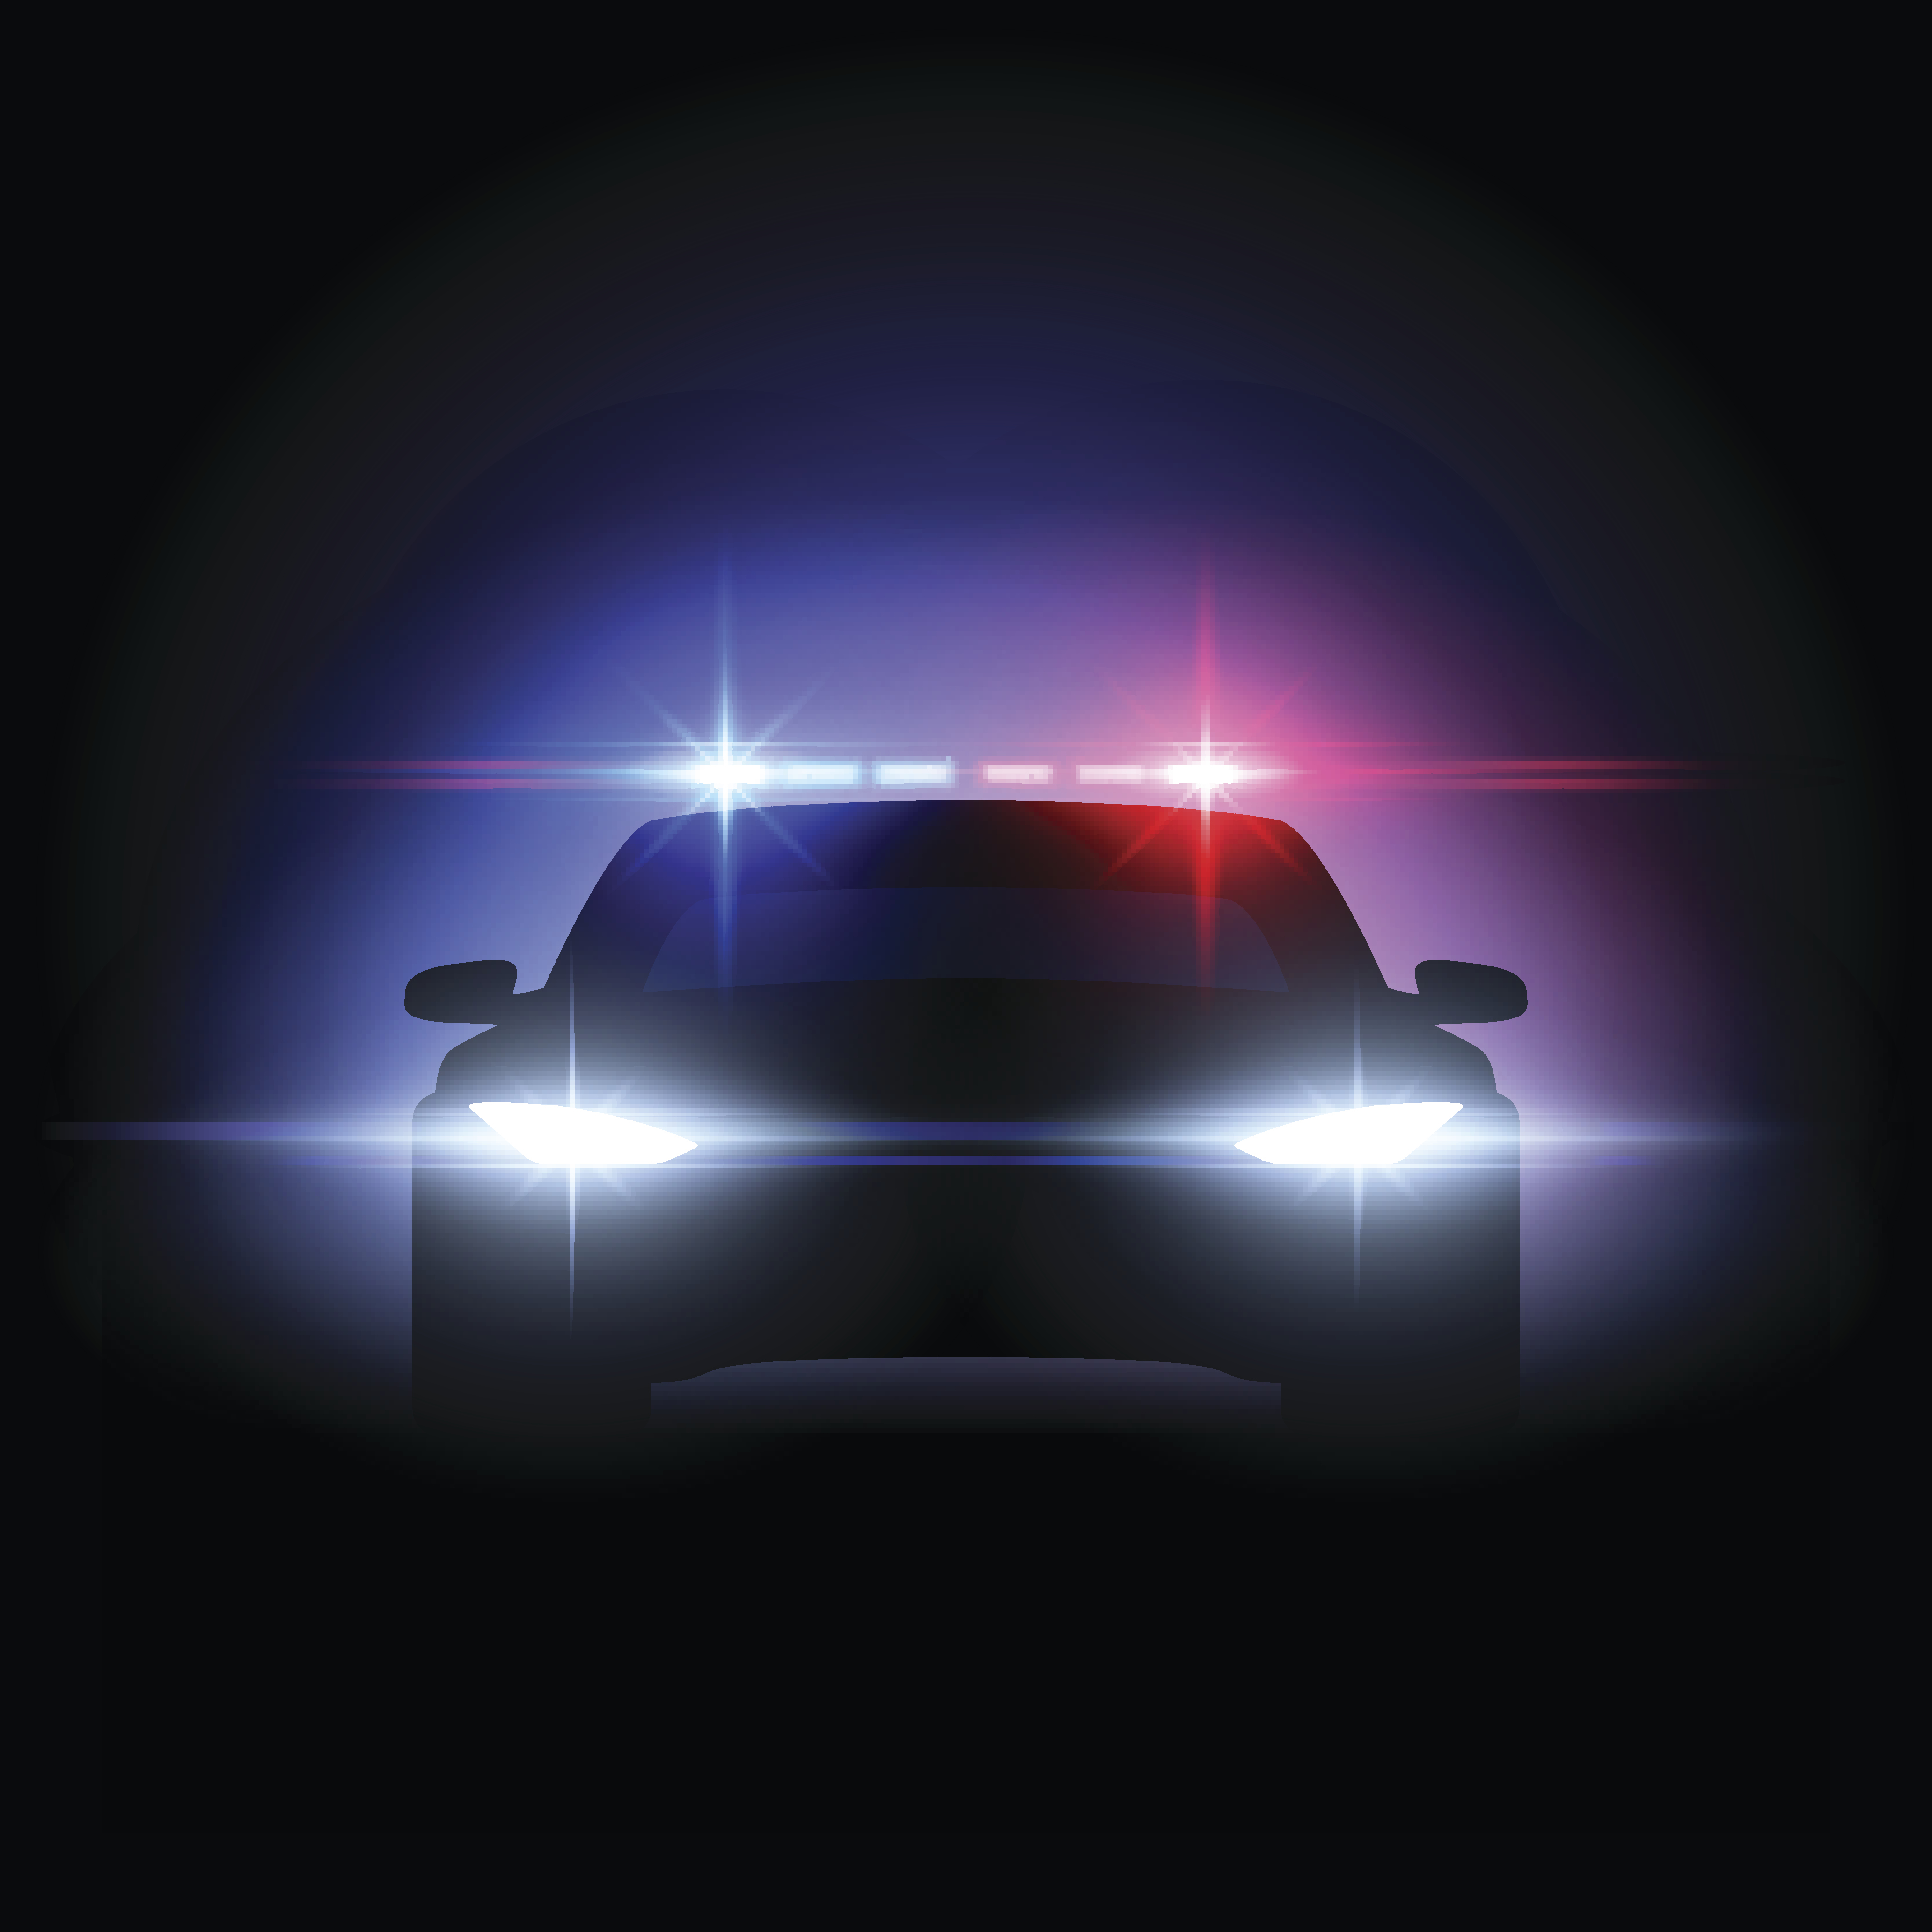 Texas Law on Traffic Stops in Unmarked Vehicles